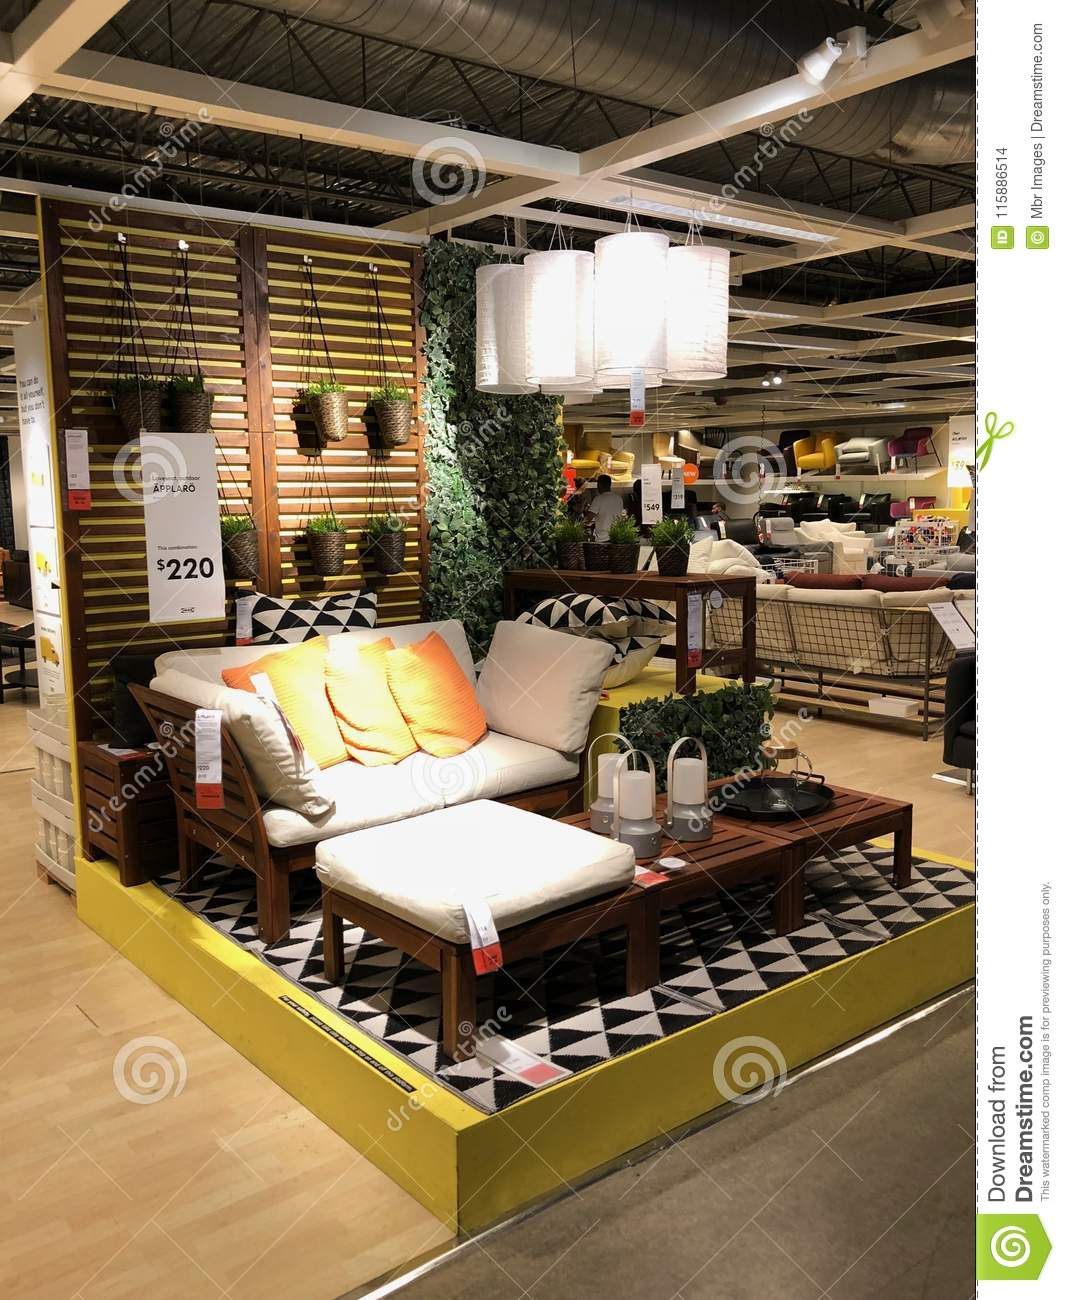 Ikea store editorial stock image. Image of armchair - 115886514